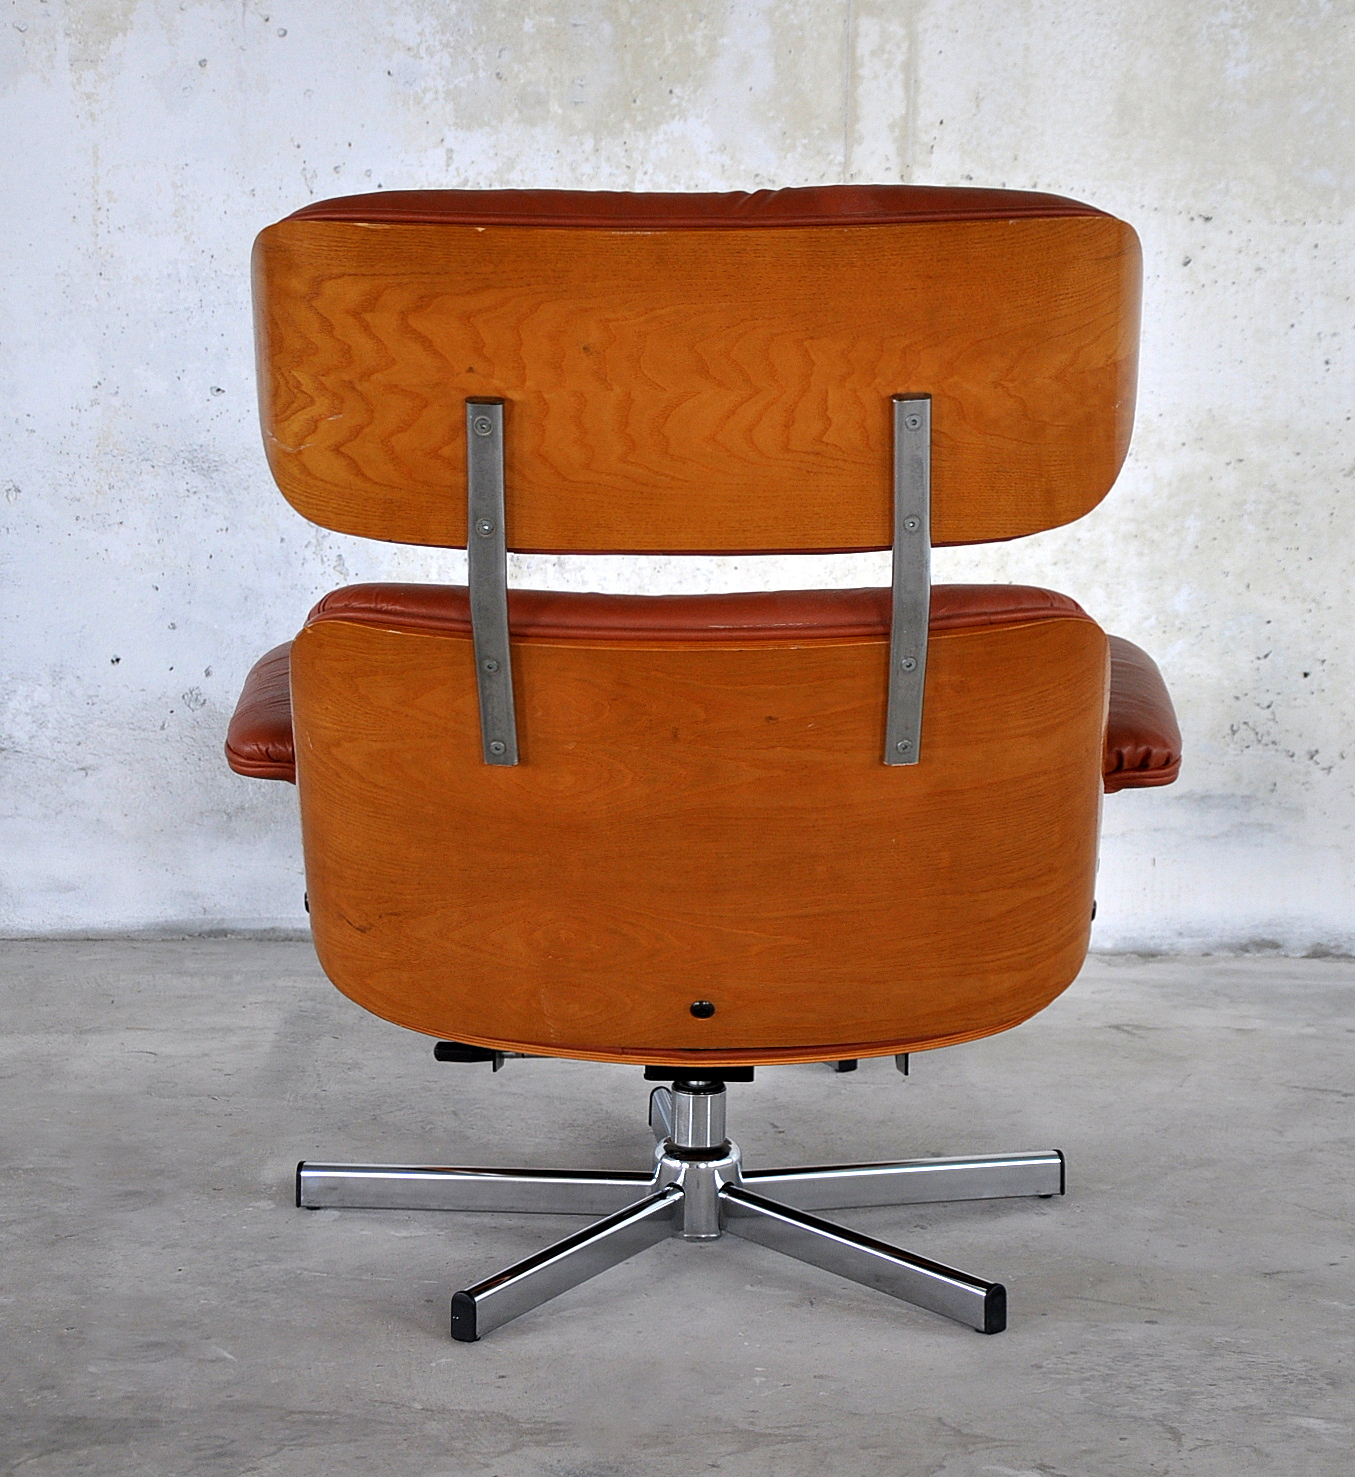 Selig Plycraft Lounge Chair Parts Cheap And A Half Select Modern